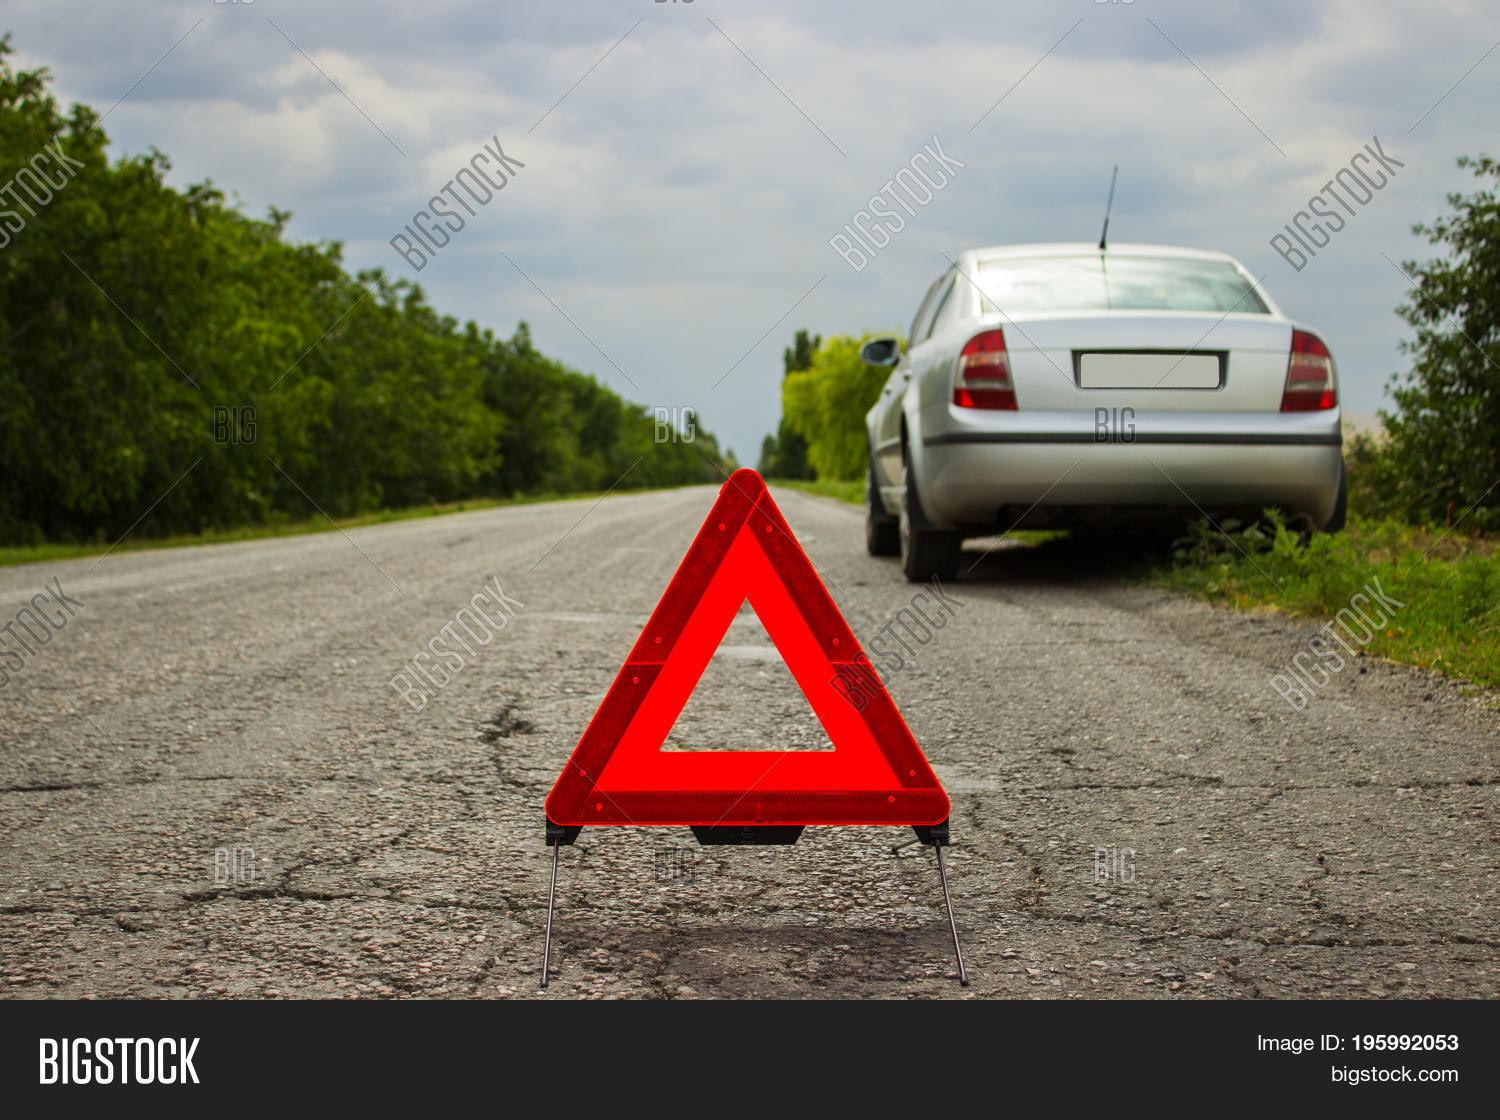 Red Triangle Of A Car On The Road Warning Against